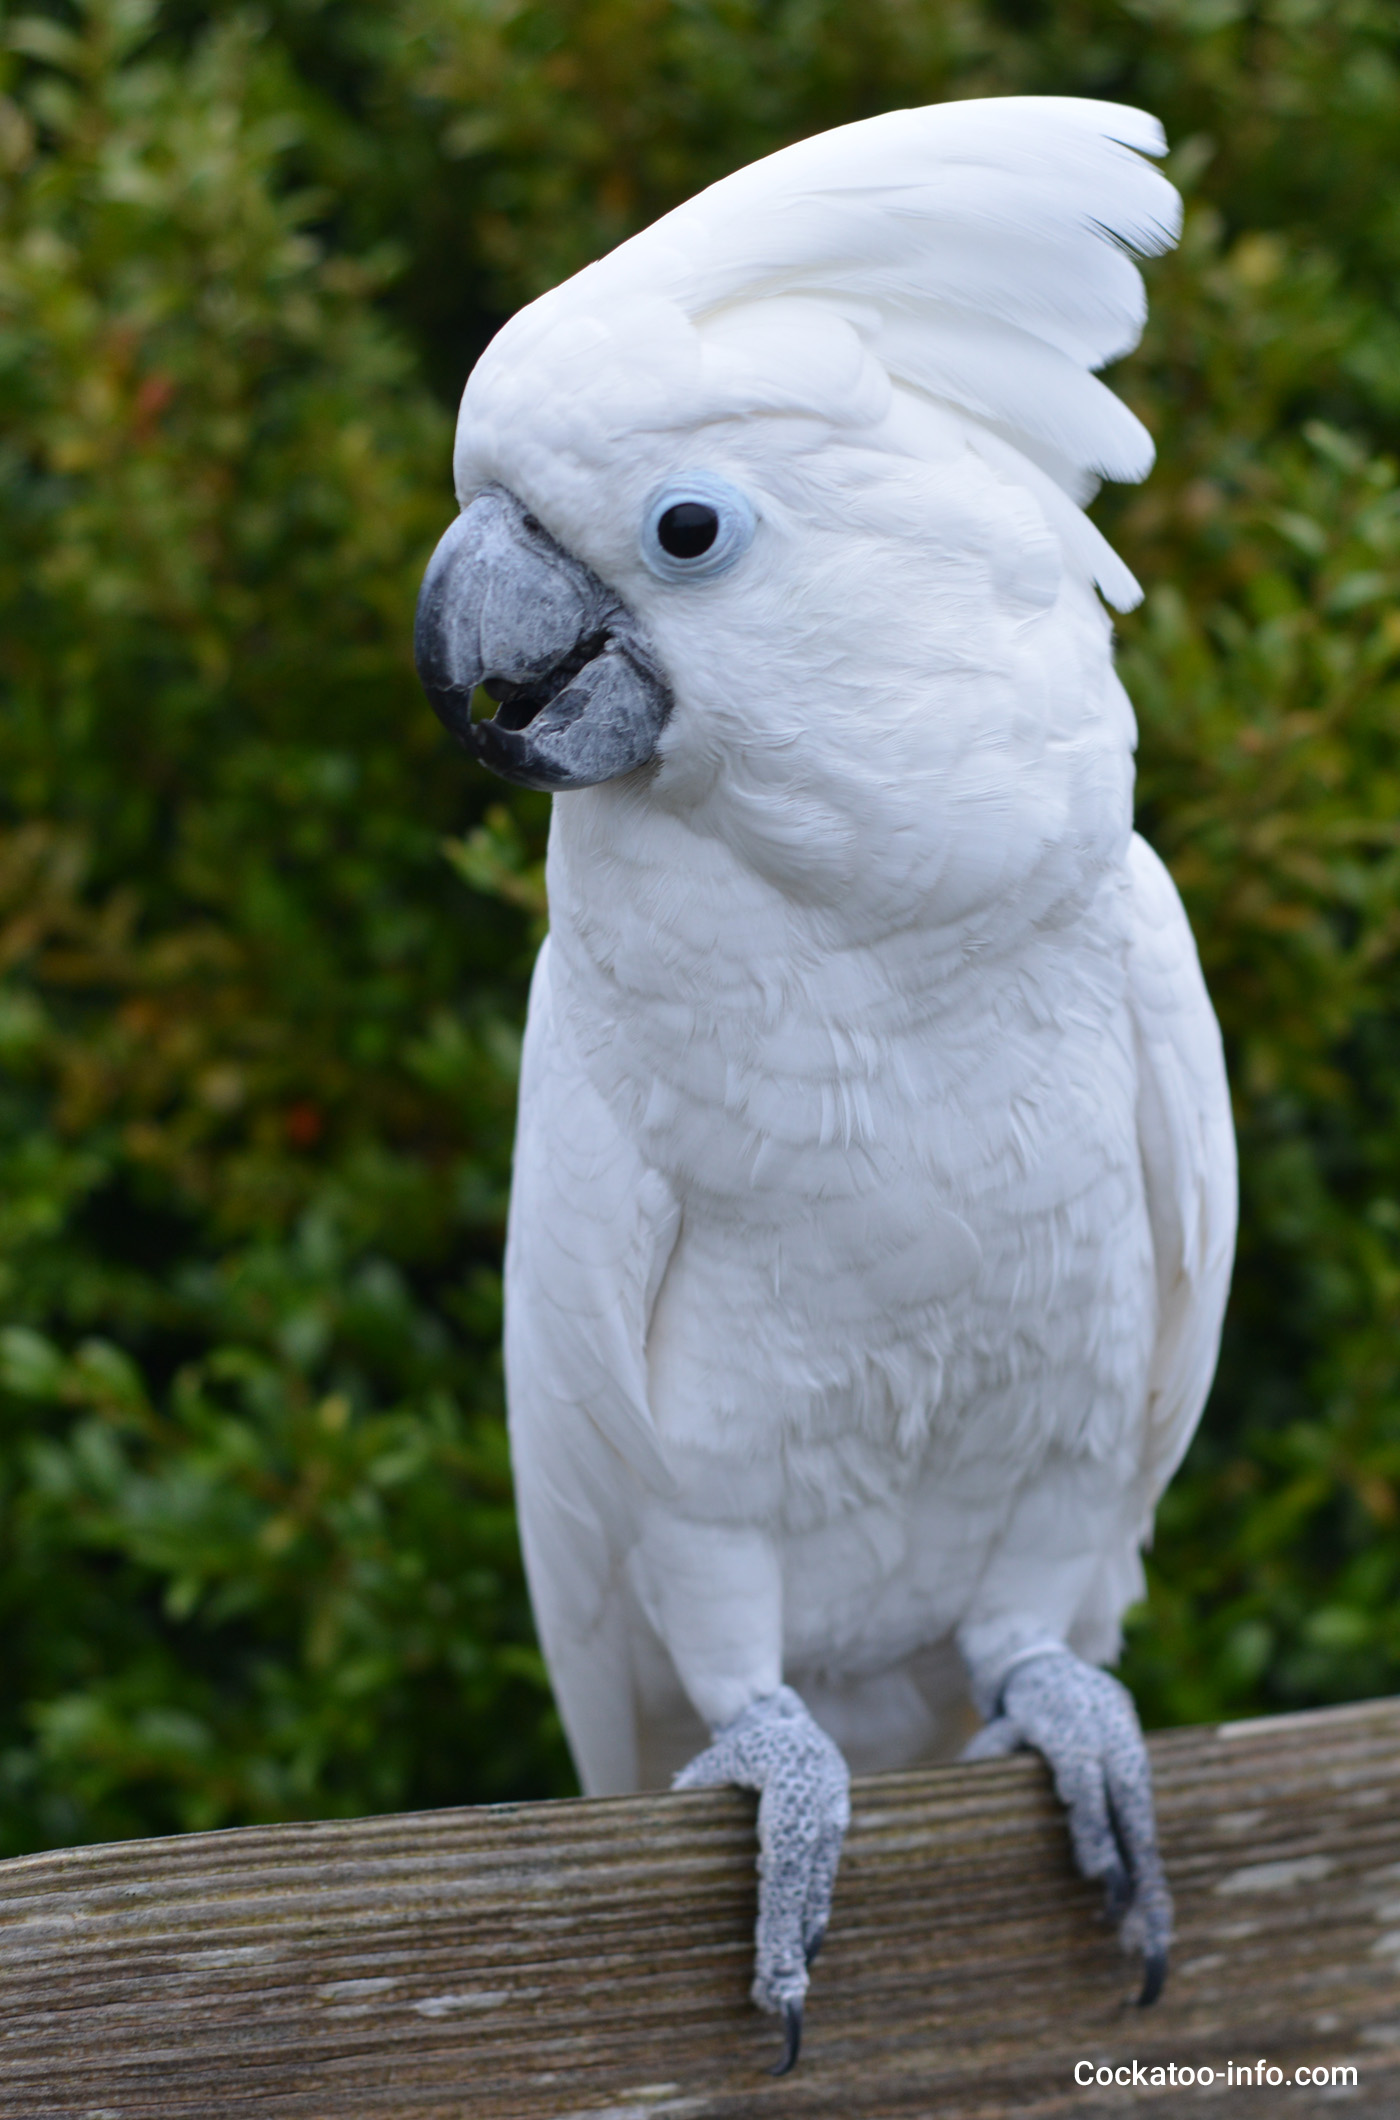 positive and negative points to caring for cockatoos cockatoo info com